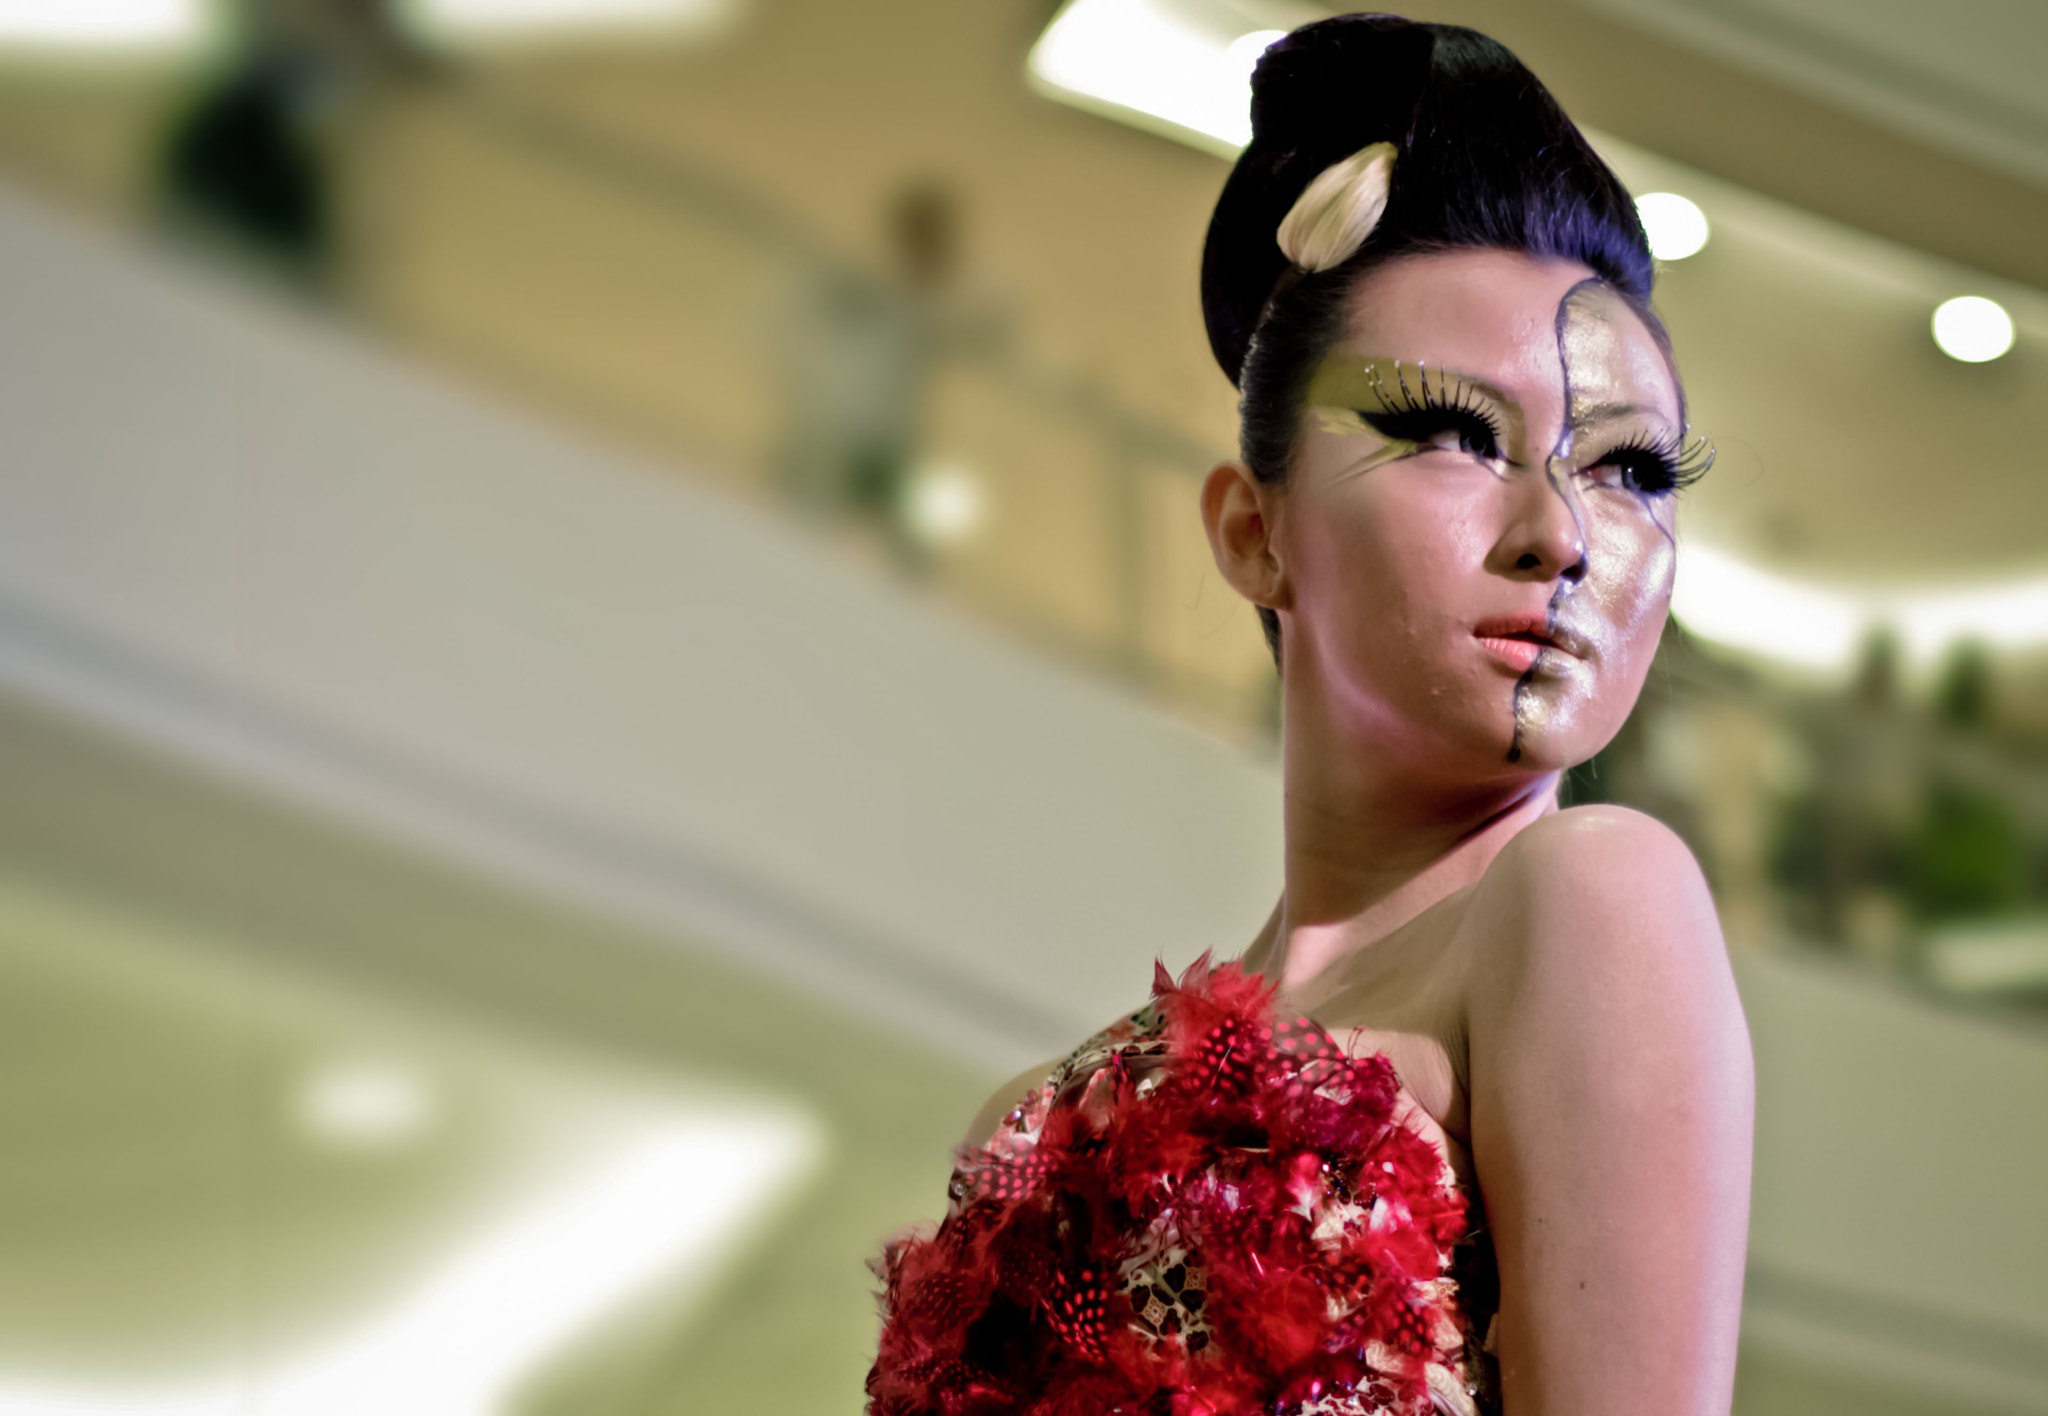 Photograph The art of fashion by Wawan Gilang on 500px